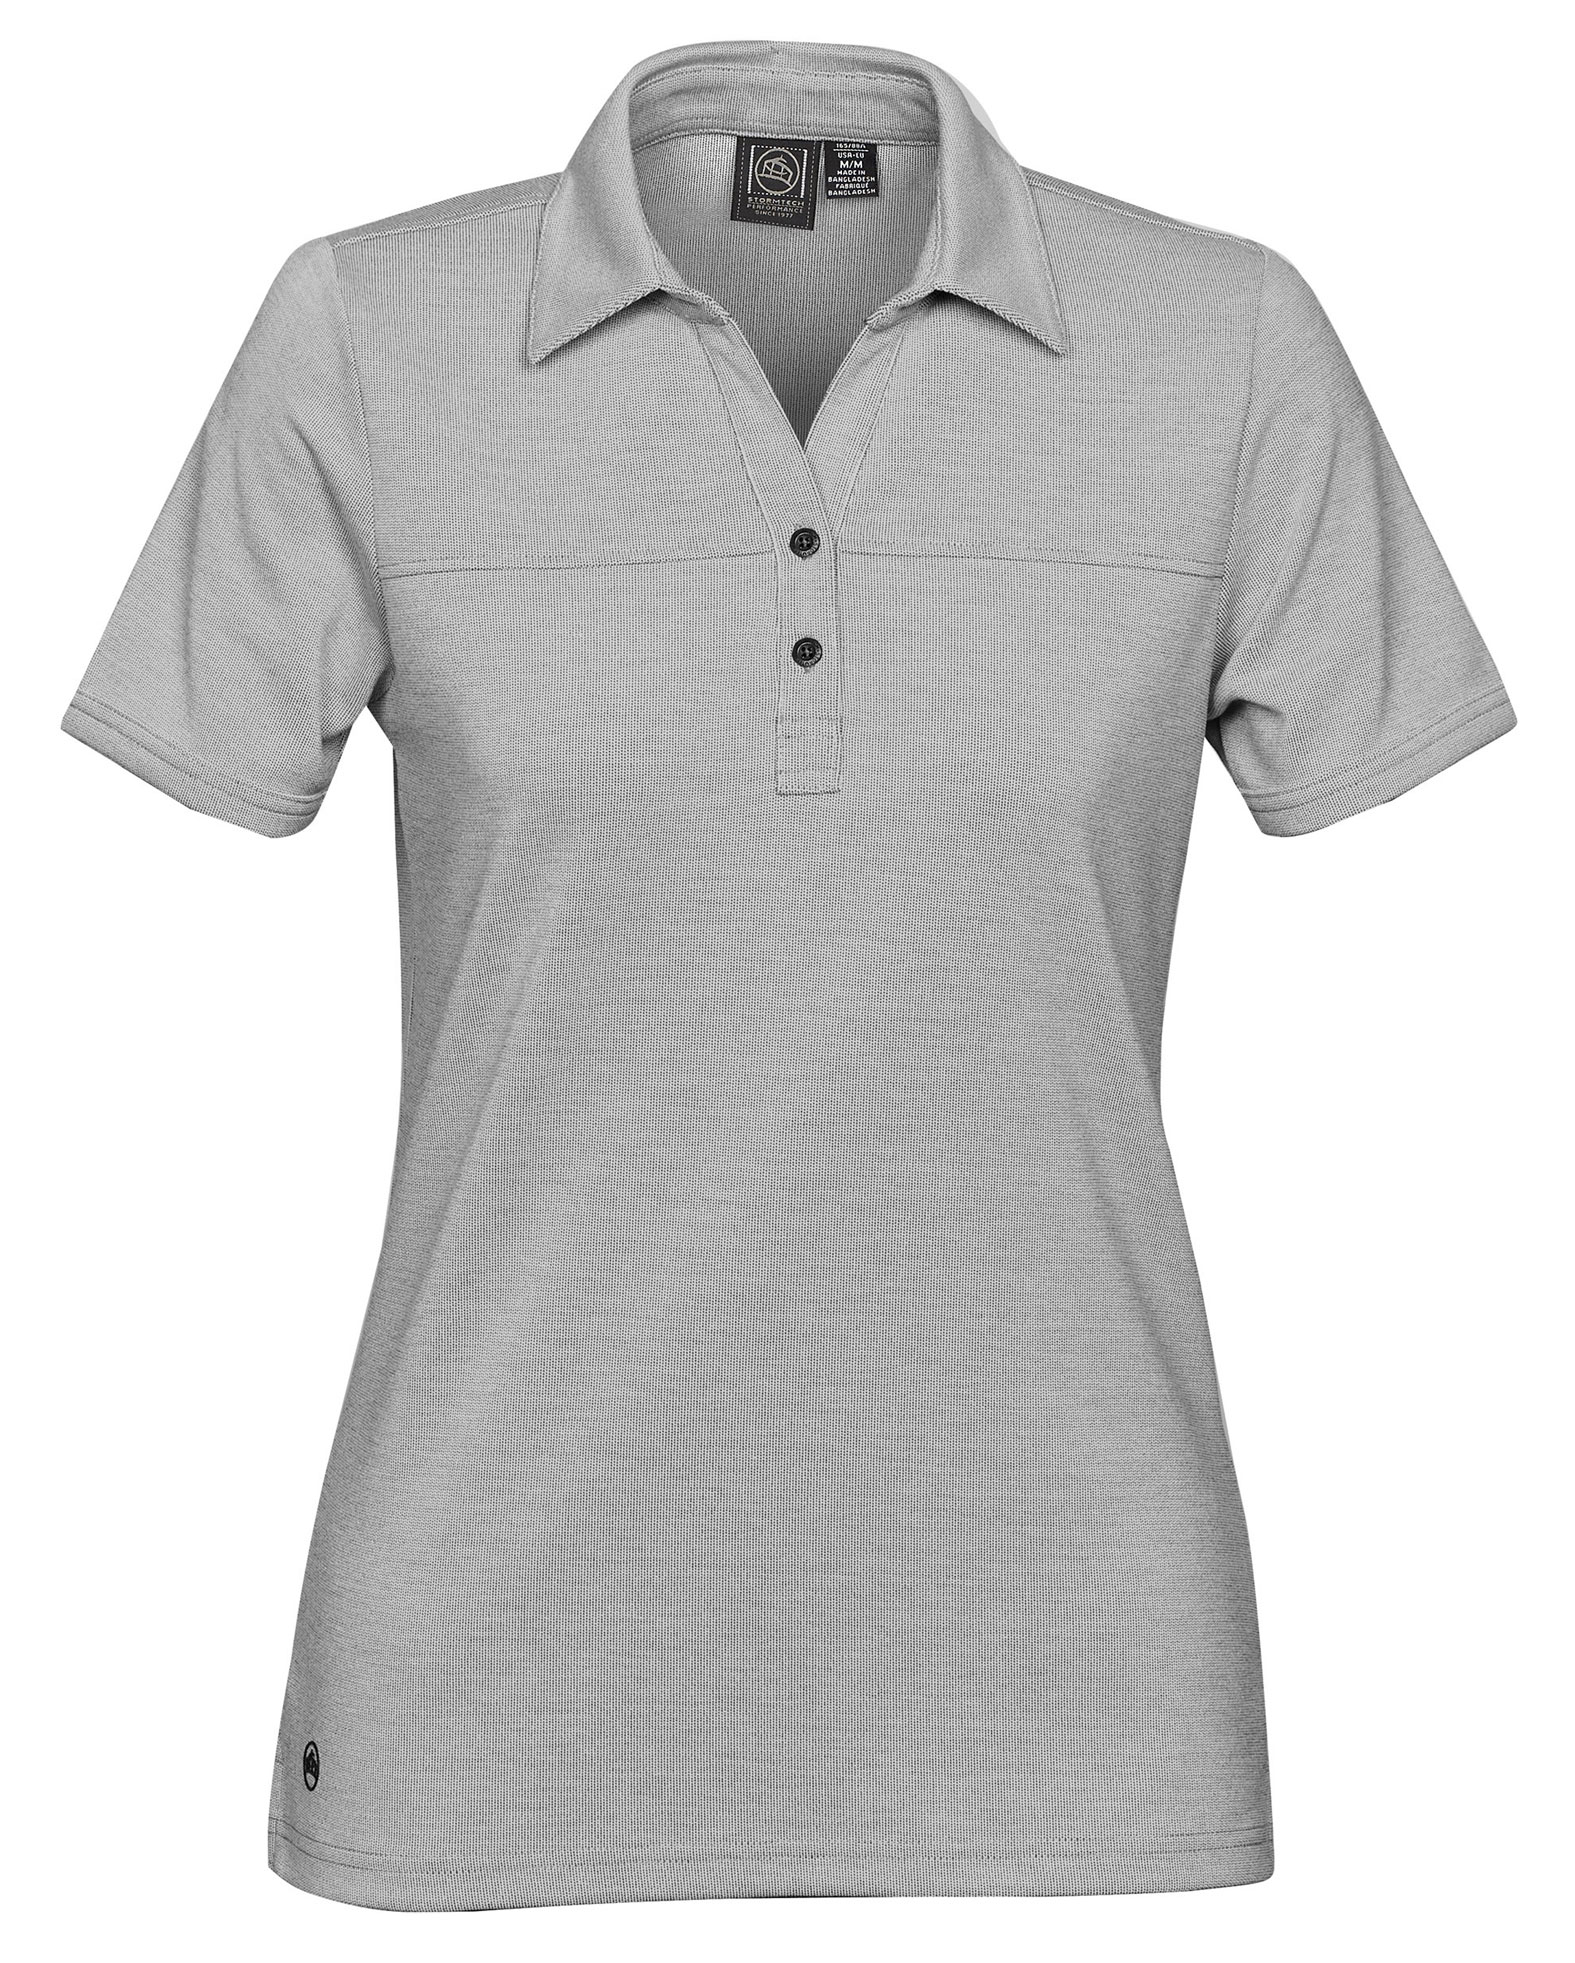 Womens Rhodes Performance Polo